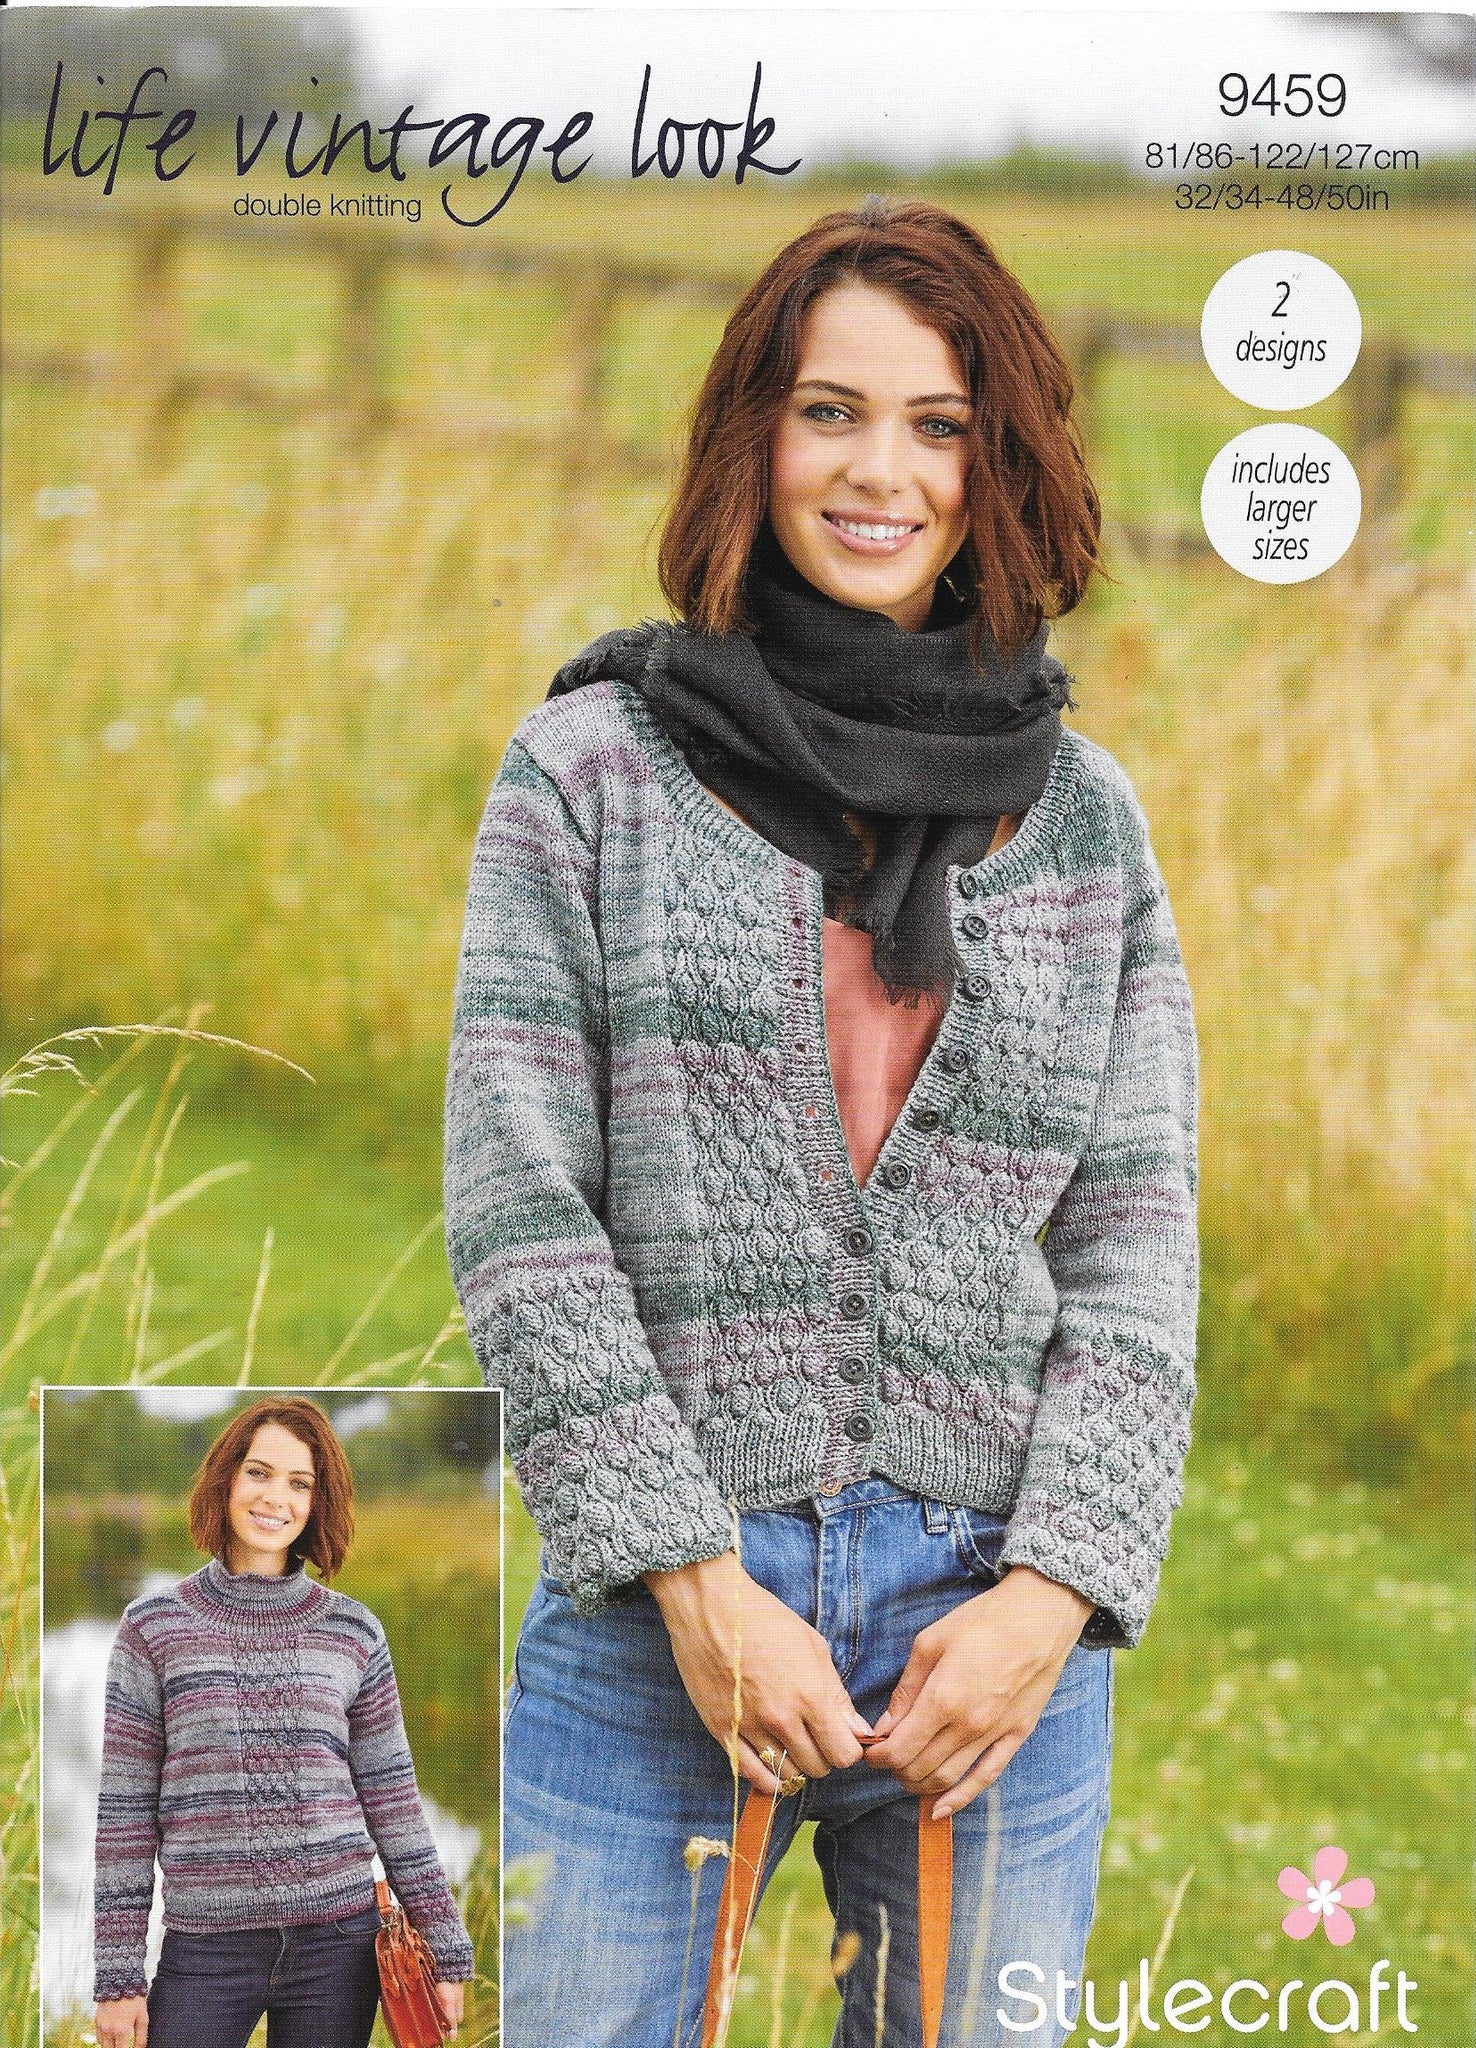 9459 Stylecraft Life Vintage dk ladies jumper and cardigan knitting pattern